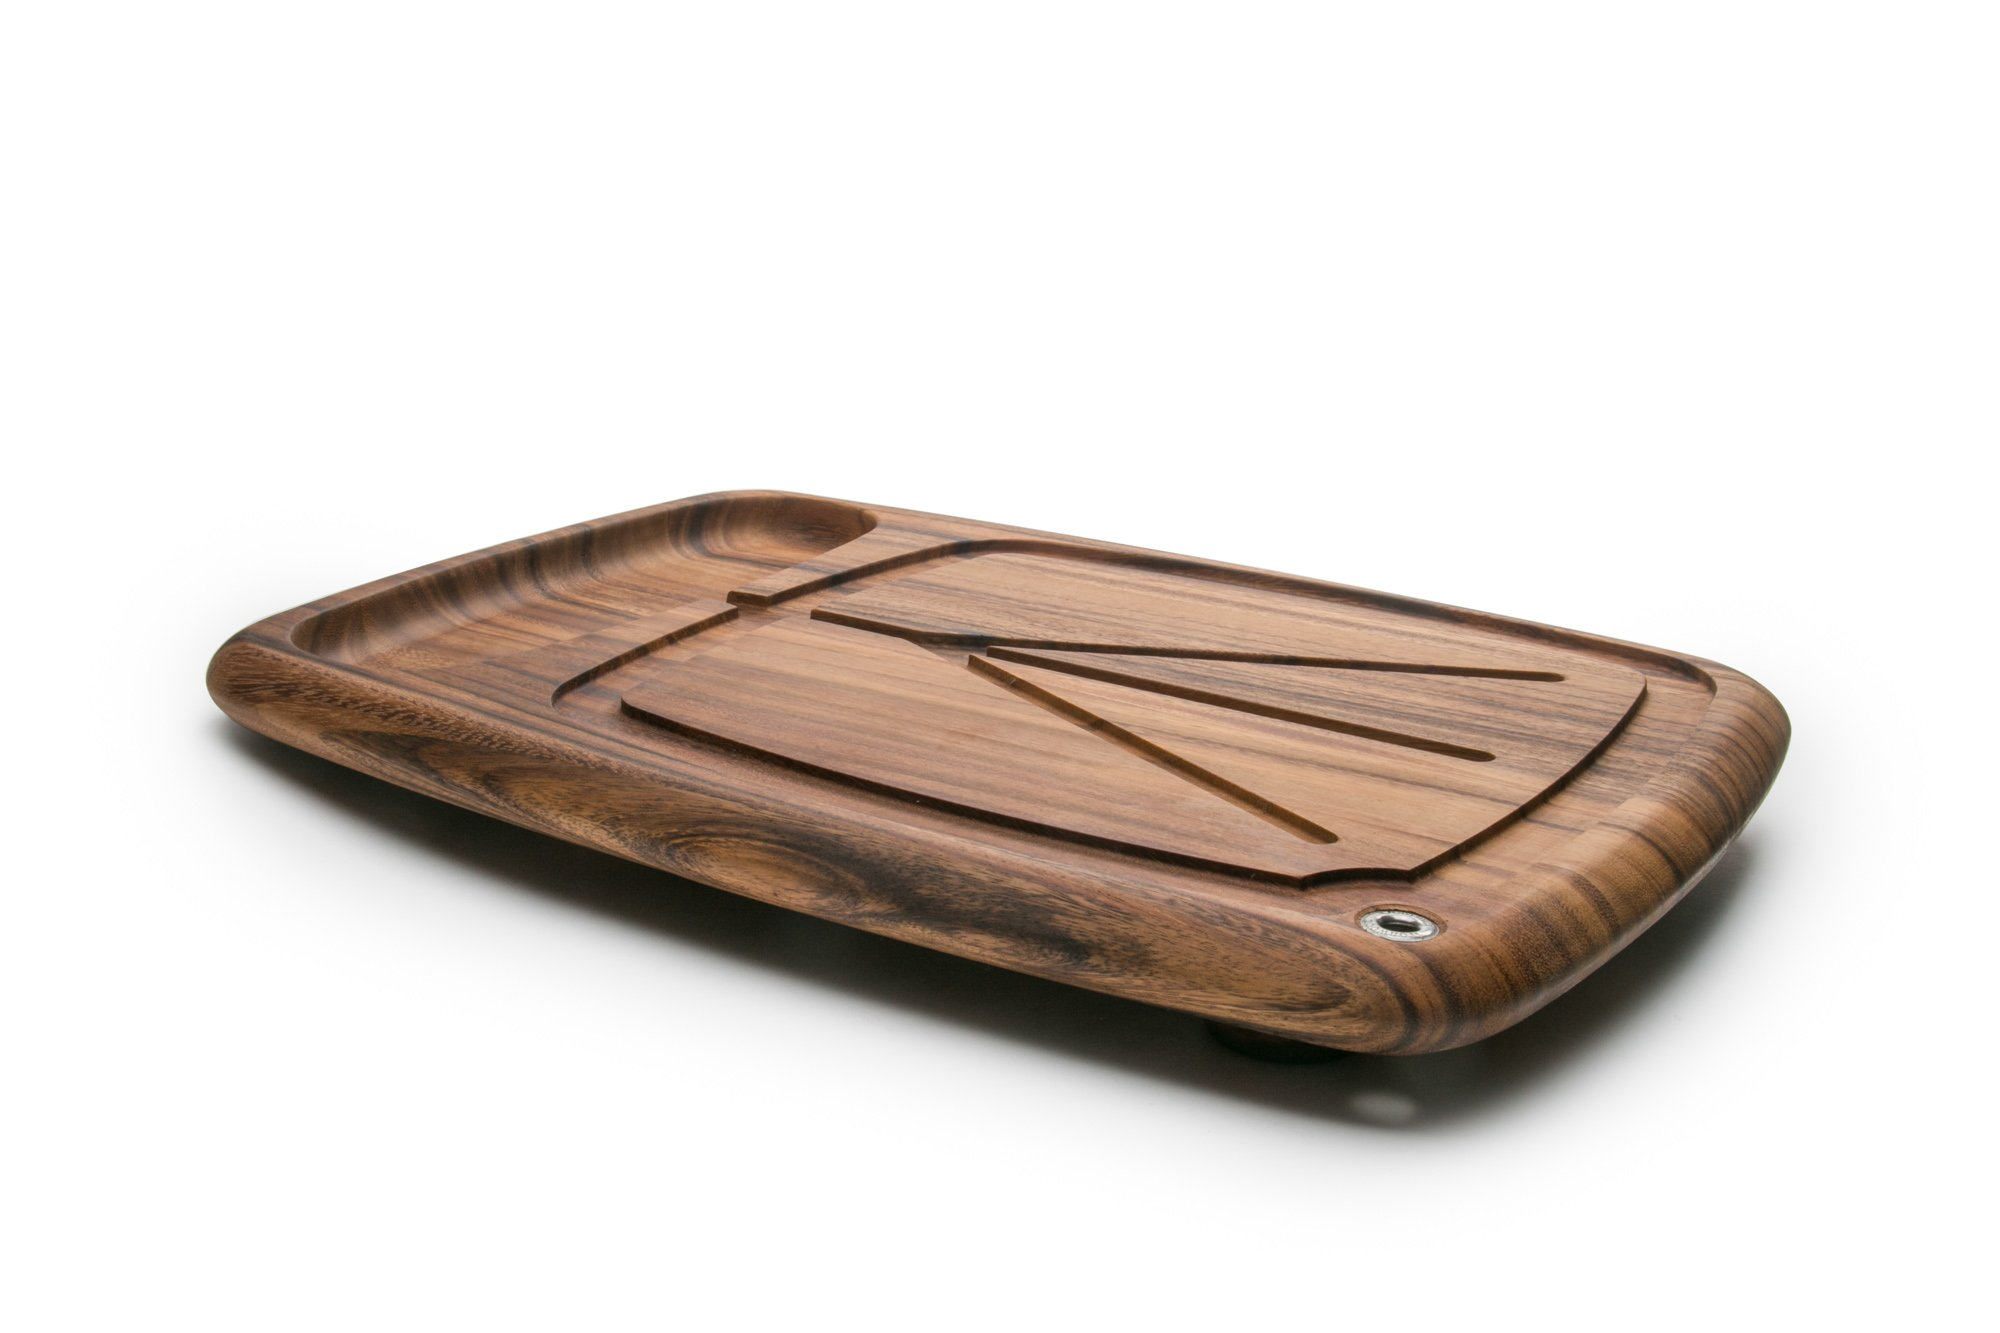 Ironwood Gourmet 28103 Kansas City Carving Board, Acacia Wood by Ironwood Gourmet